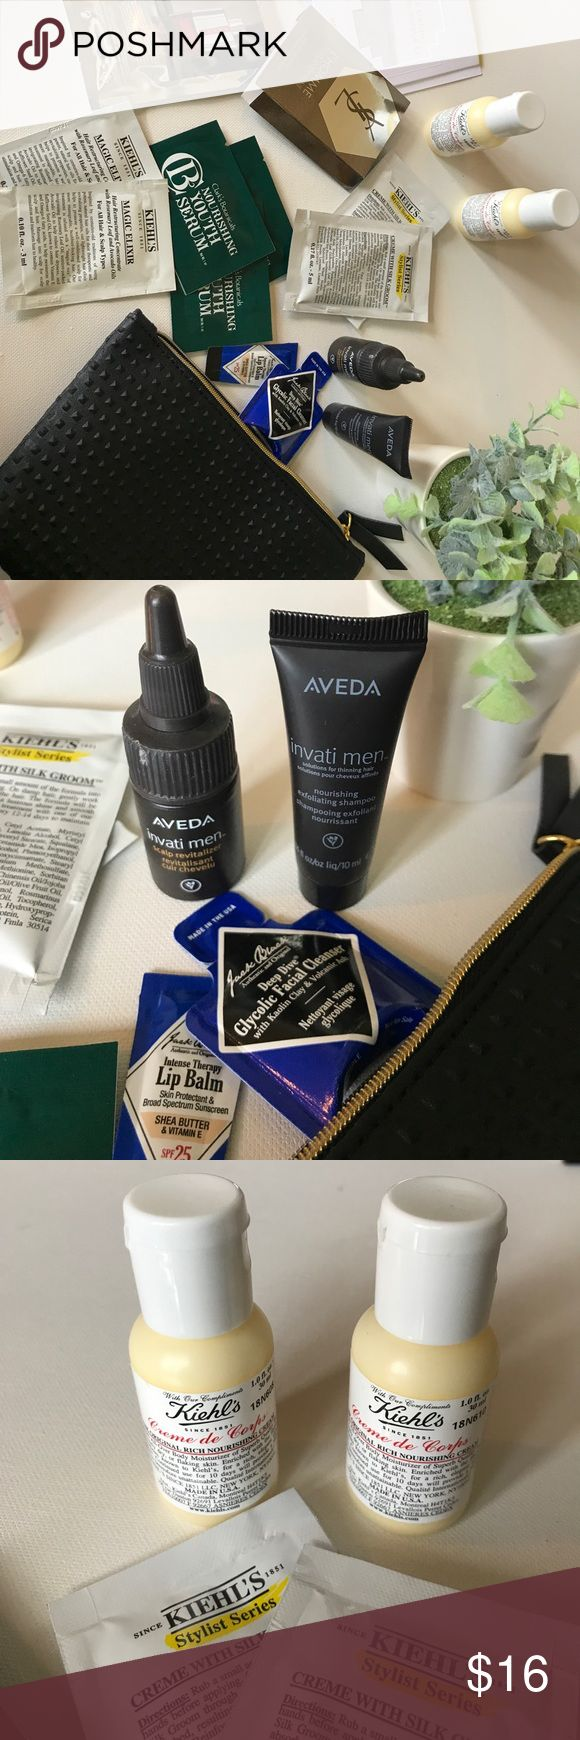 Men's Aveda & Kiehl's Travel Bundle Condition: Brand New/Unused 💋  Men's Travel Bundle Includes:   Deluxe Travel Sizes: Aveda Invati Nourishing Exfoliating Shampoo Aveda Invati Scalp Revitalizer Kiehl's Creme de Corps Rich Cream x 2 Black studded Ipsy toiletries bag  Sample Packets: Kiehl's Jack Black Clark's Botanicals Prada Sport Hermès Le Jardin de Monsieur Li YSL L'Homme Victor & Rolf Spicebomb Commodity Bergamot   🍍🍍🍍New! Bundle & Save with my Other Listings! Sephora Makeup